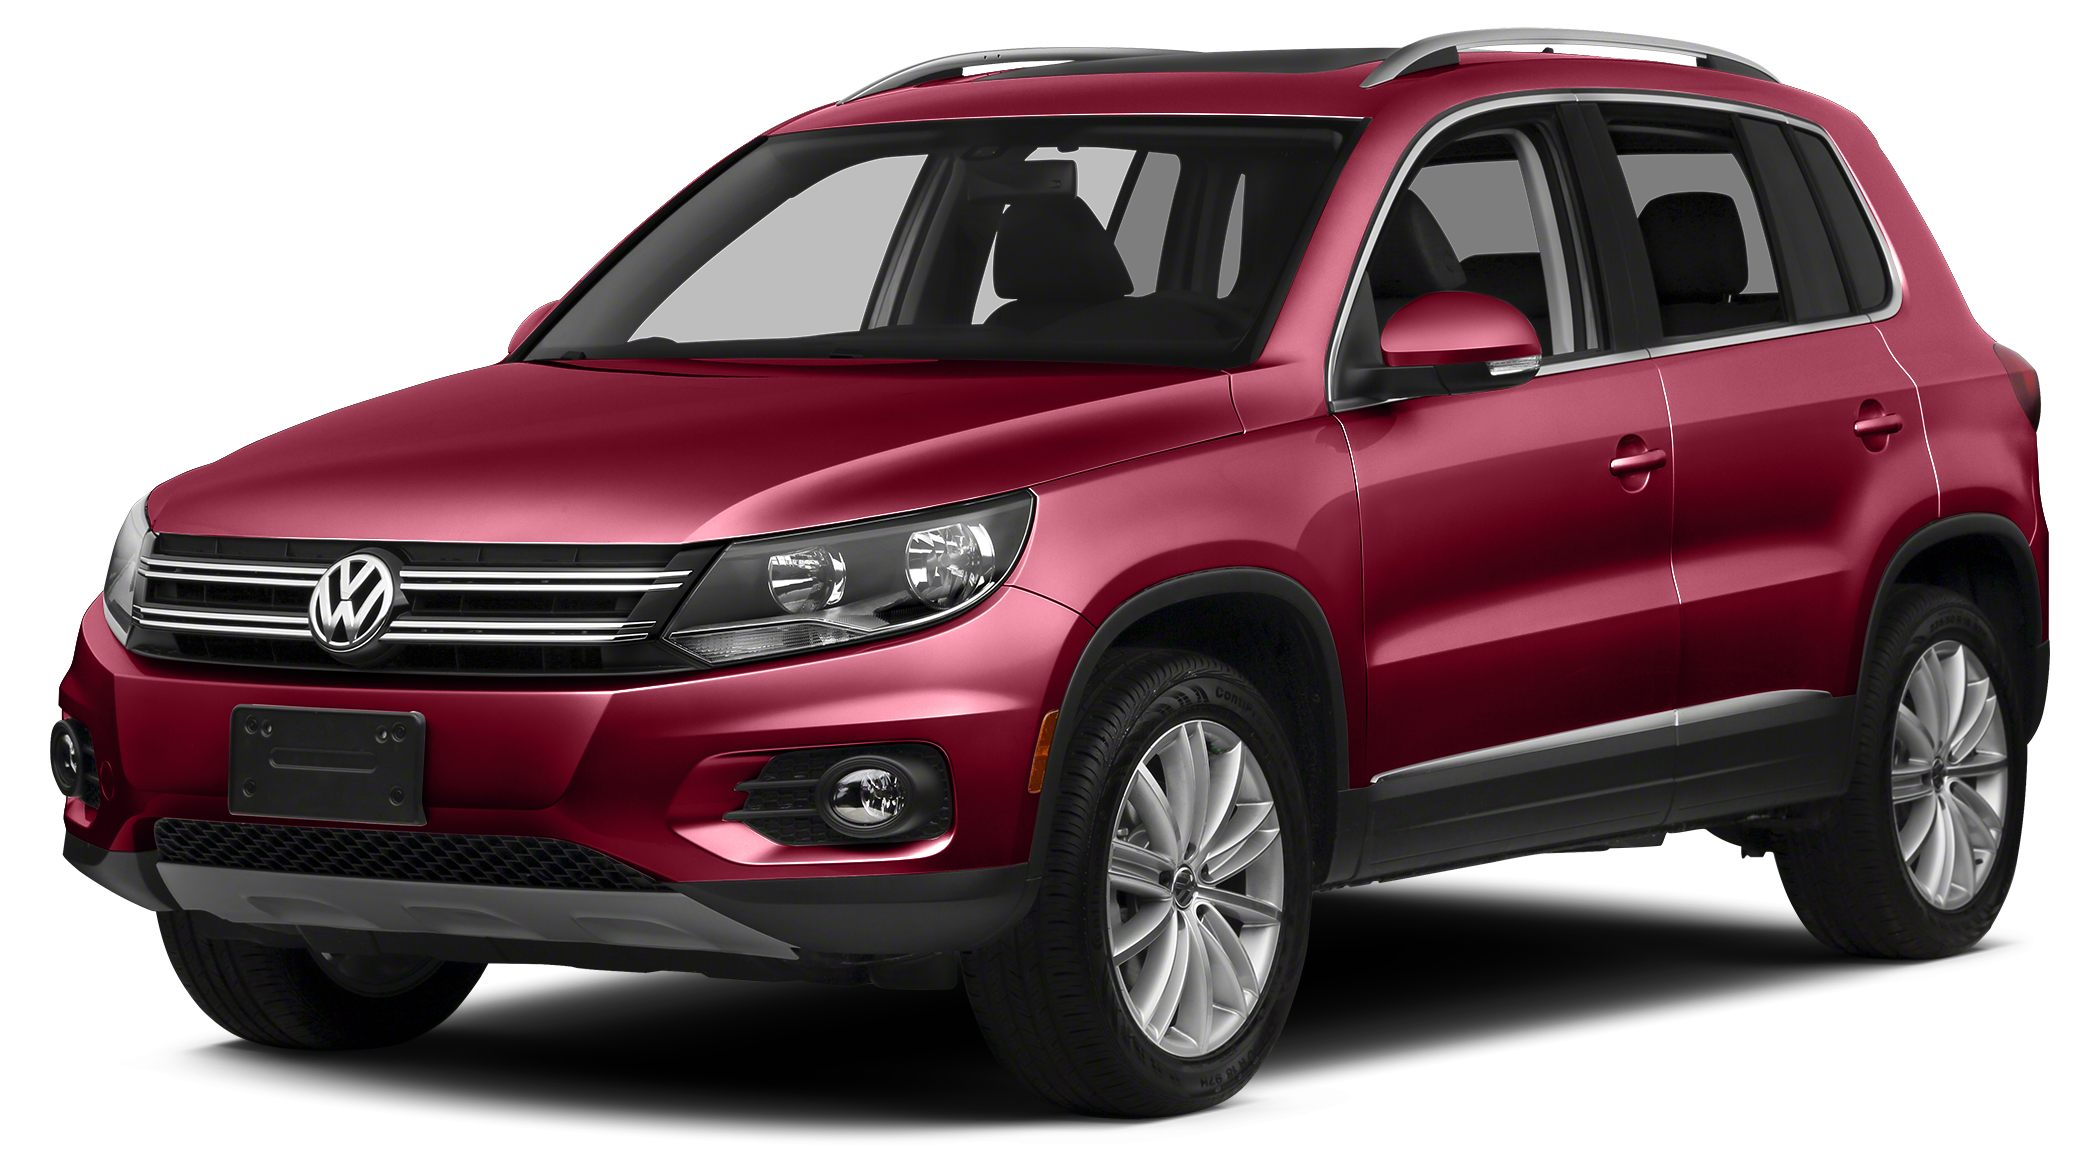 2013 Volkswagen Tiguan S 10 YEAR OR 100000 MILE WARRANTY FROM THE DATE YOU BUY IT ONE OWNER WITH